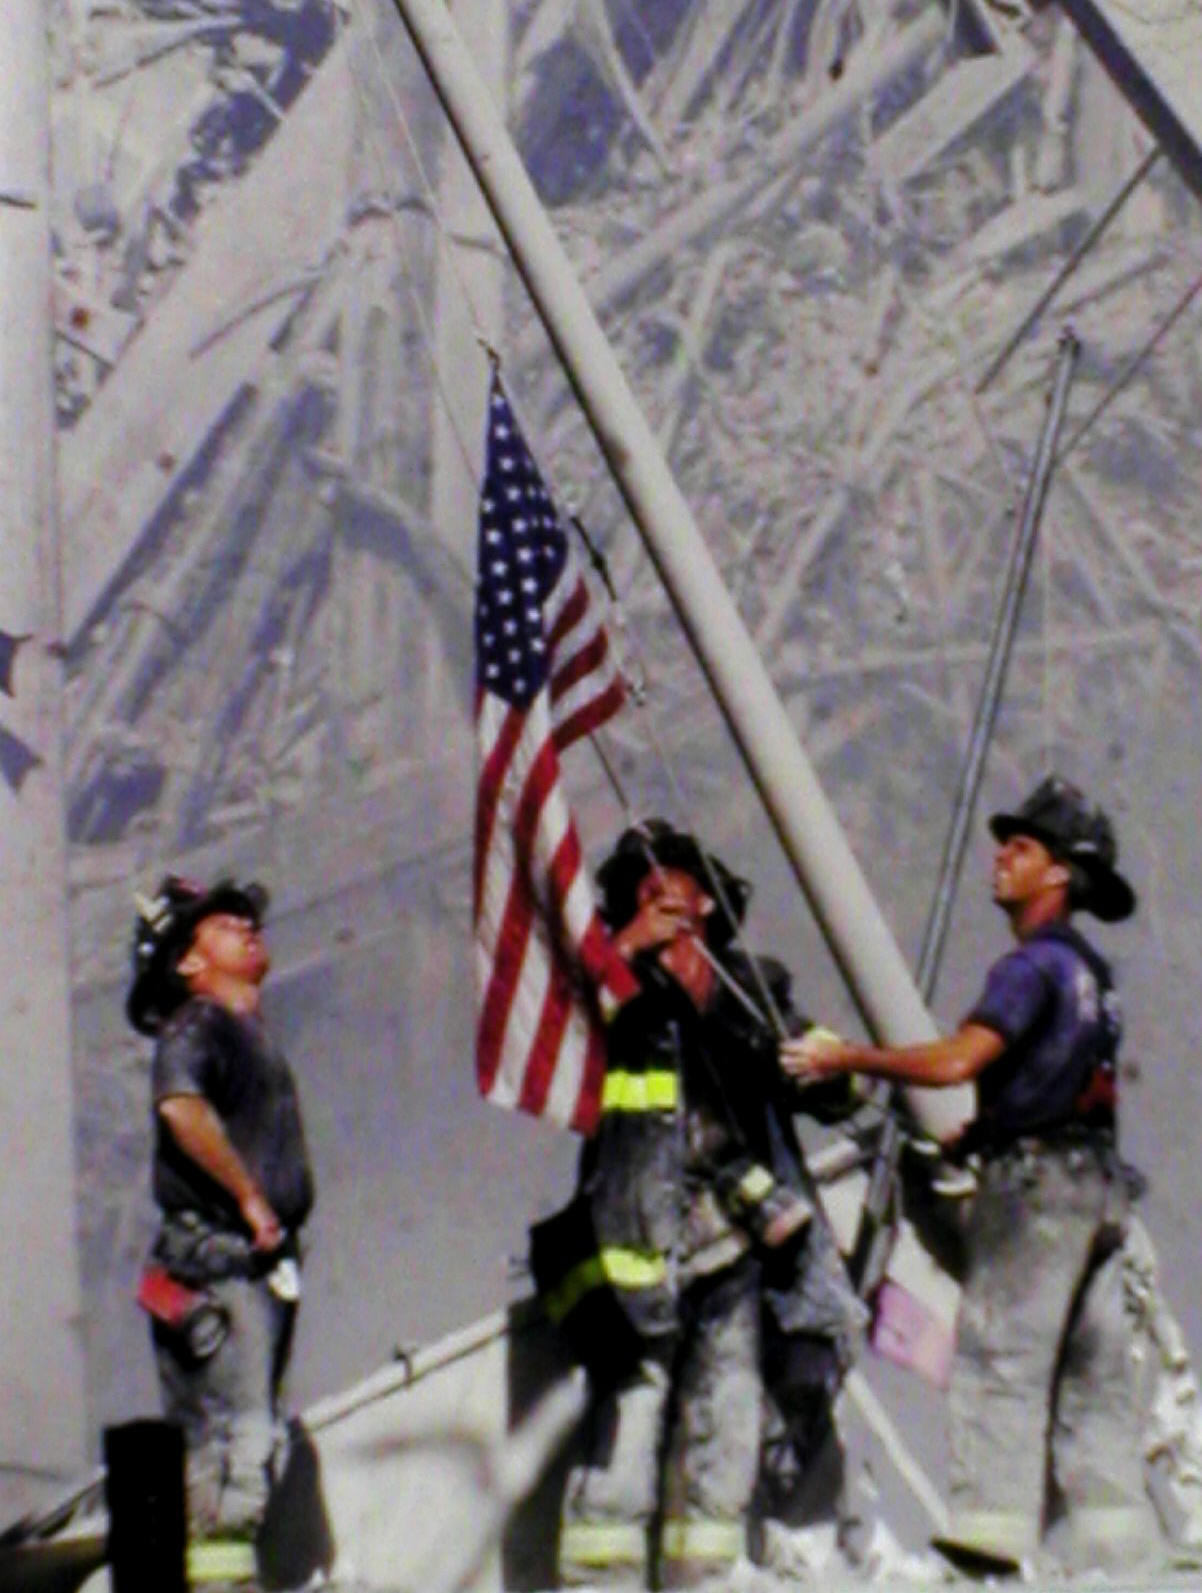 """an essay on the horrific event of sept 11 2001 in the united states I remember the week after september 11, 2001, when the subway from  the  specter of the world trade center was soon enough evoked by art  11 attacks,  a state of denial held to begin even as the horrific event was taking place  to  siegfried kracauer's under-appreciated 1927 essay """"photography,""""."""